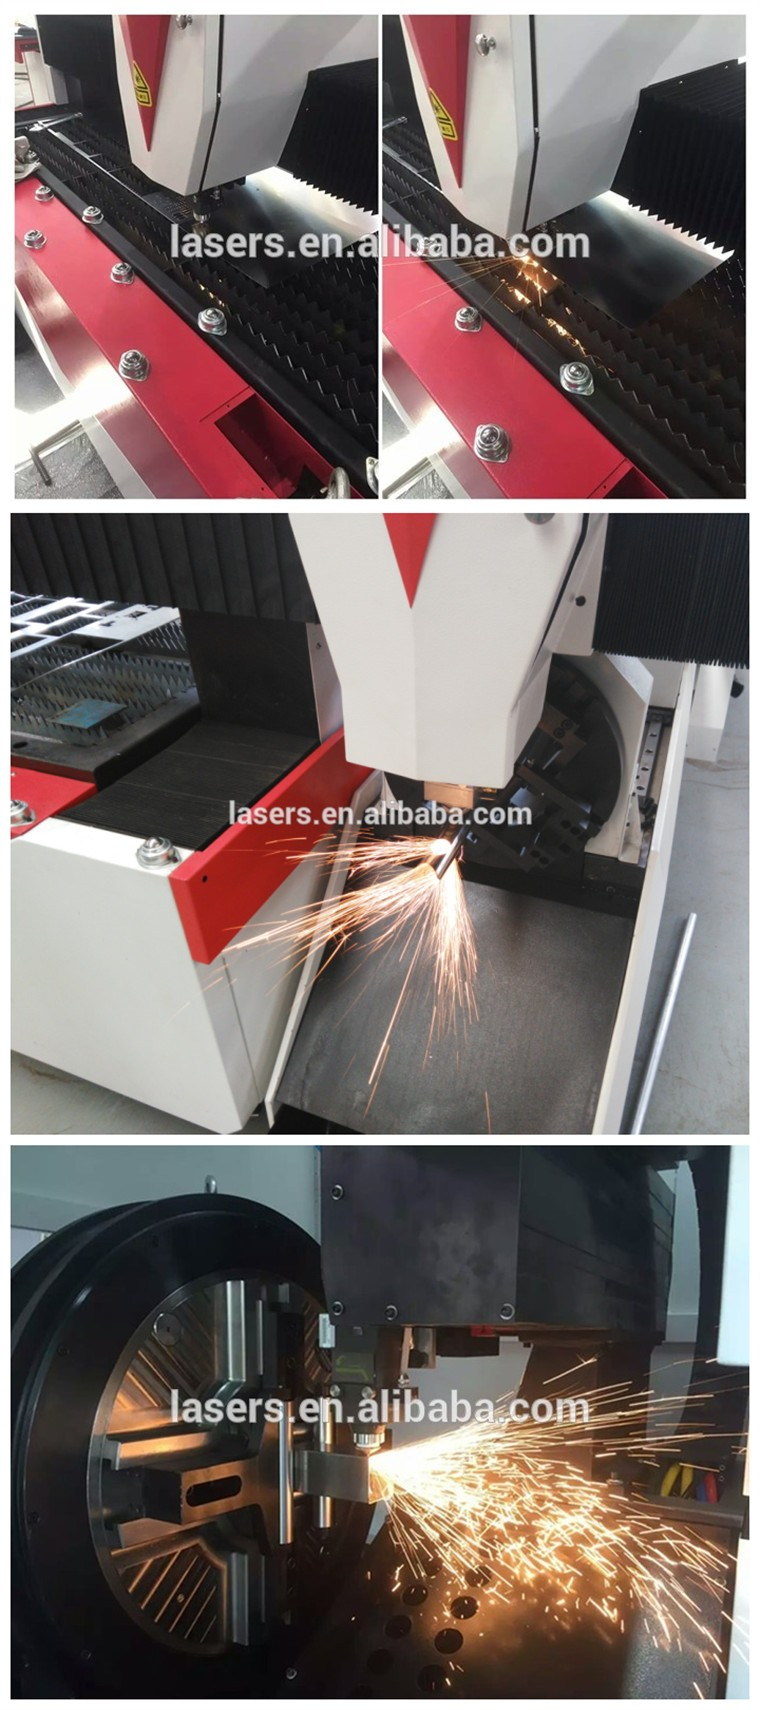 3mm 4mm 6mm 8mm 10mm carbon steel fiber laser cutting machine price